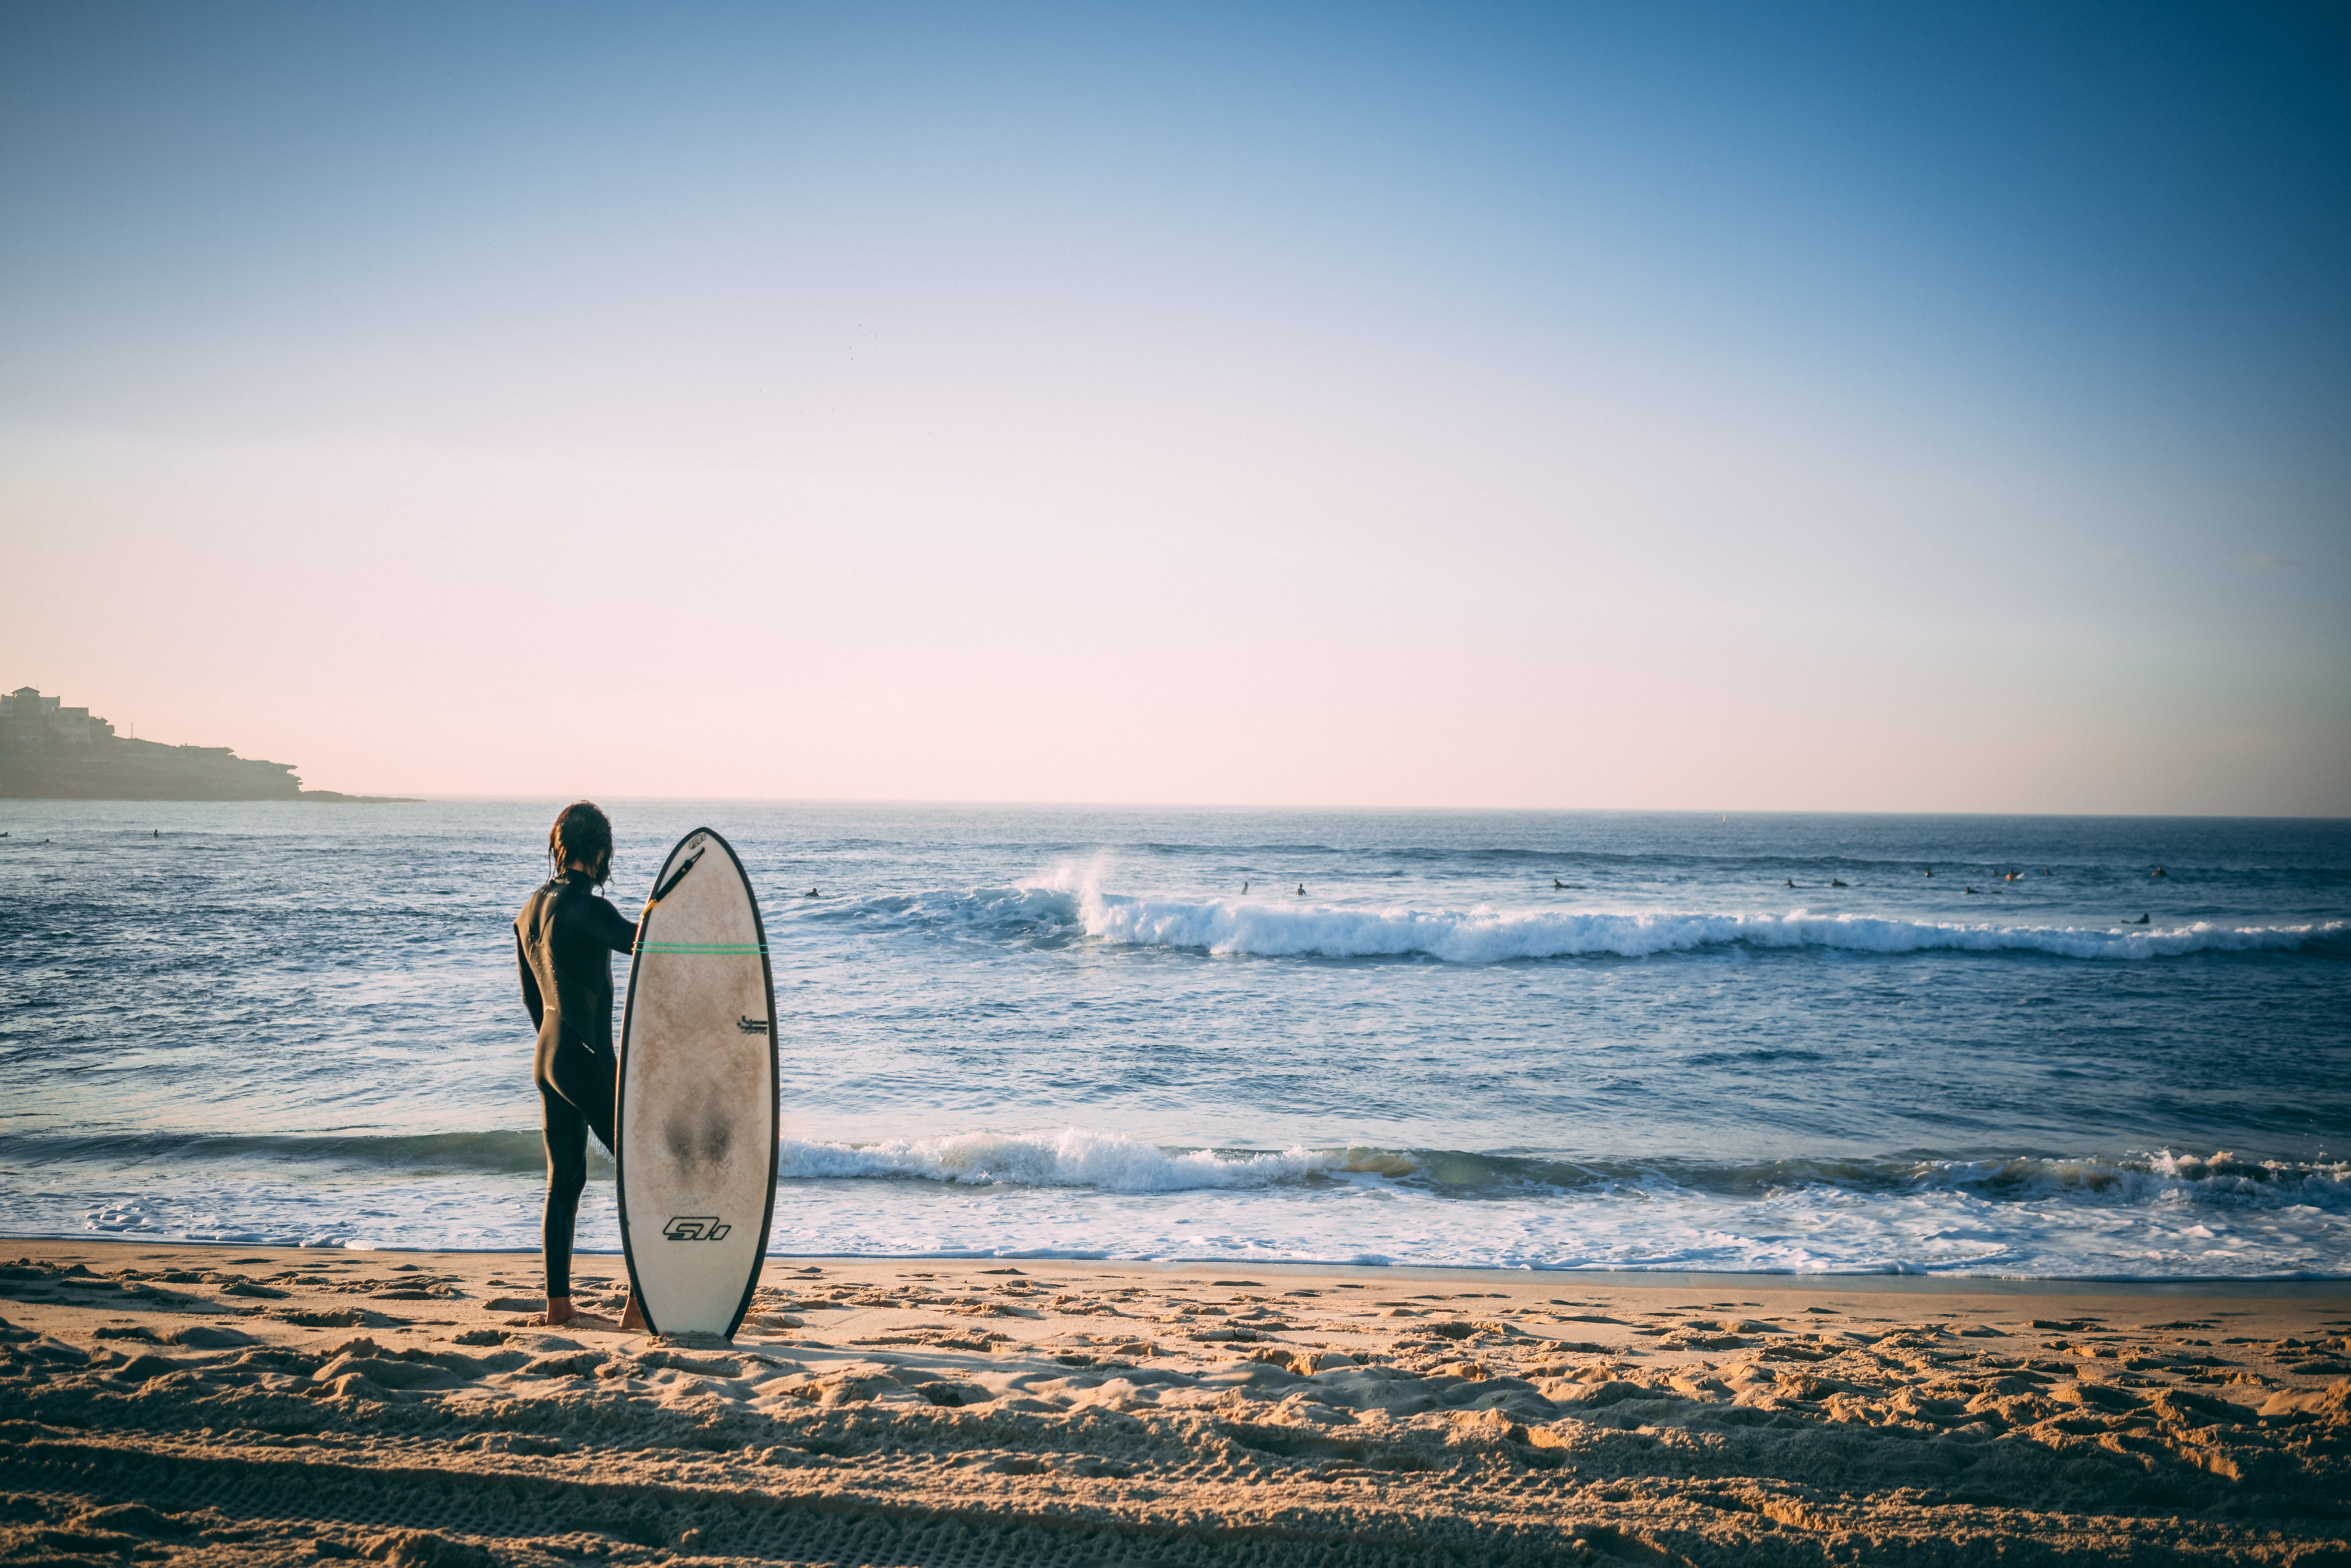 naked person holding surfboard on beach shore